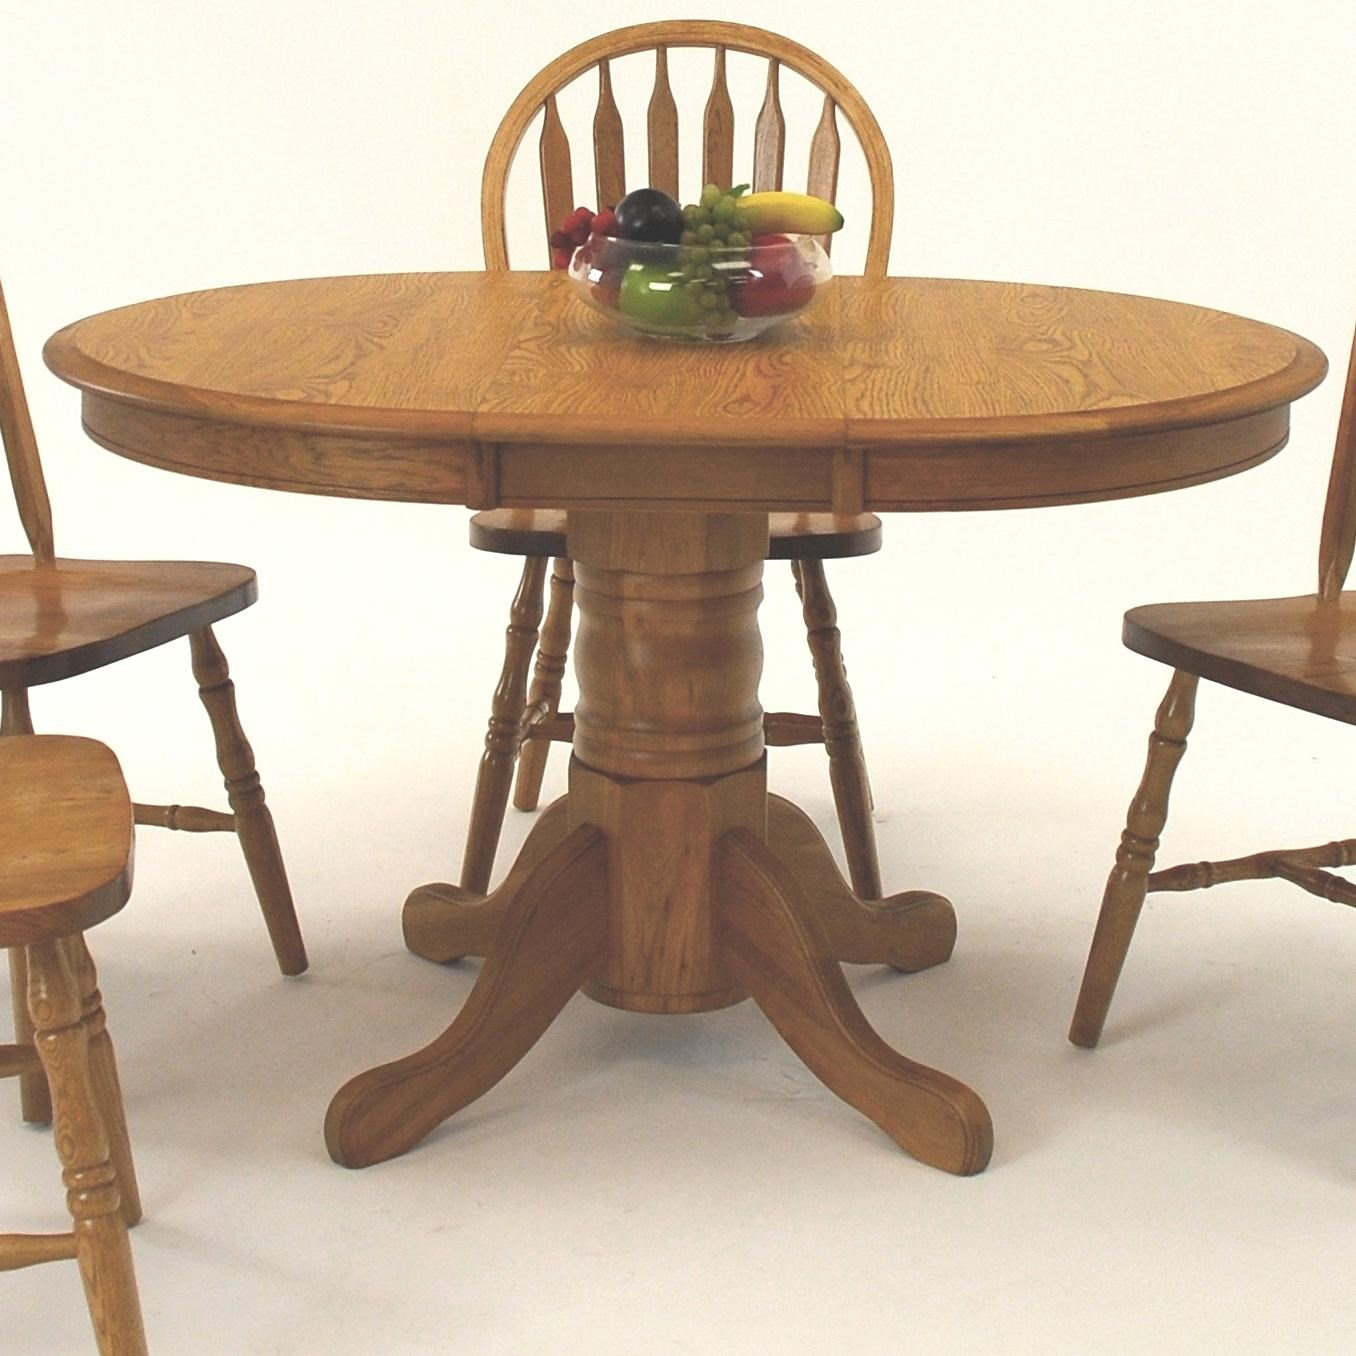 GS Furniture Classic Oak Oval Pedestal Dining Table with  : american20classicew2b364814chew2t364814ch bjpgscalebothampwidth500ampheight500ampfsharpen25ampdown from www.a1furniture.com size 500 x 500 jpeg 46kB